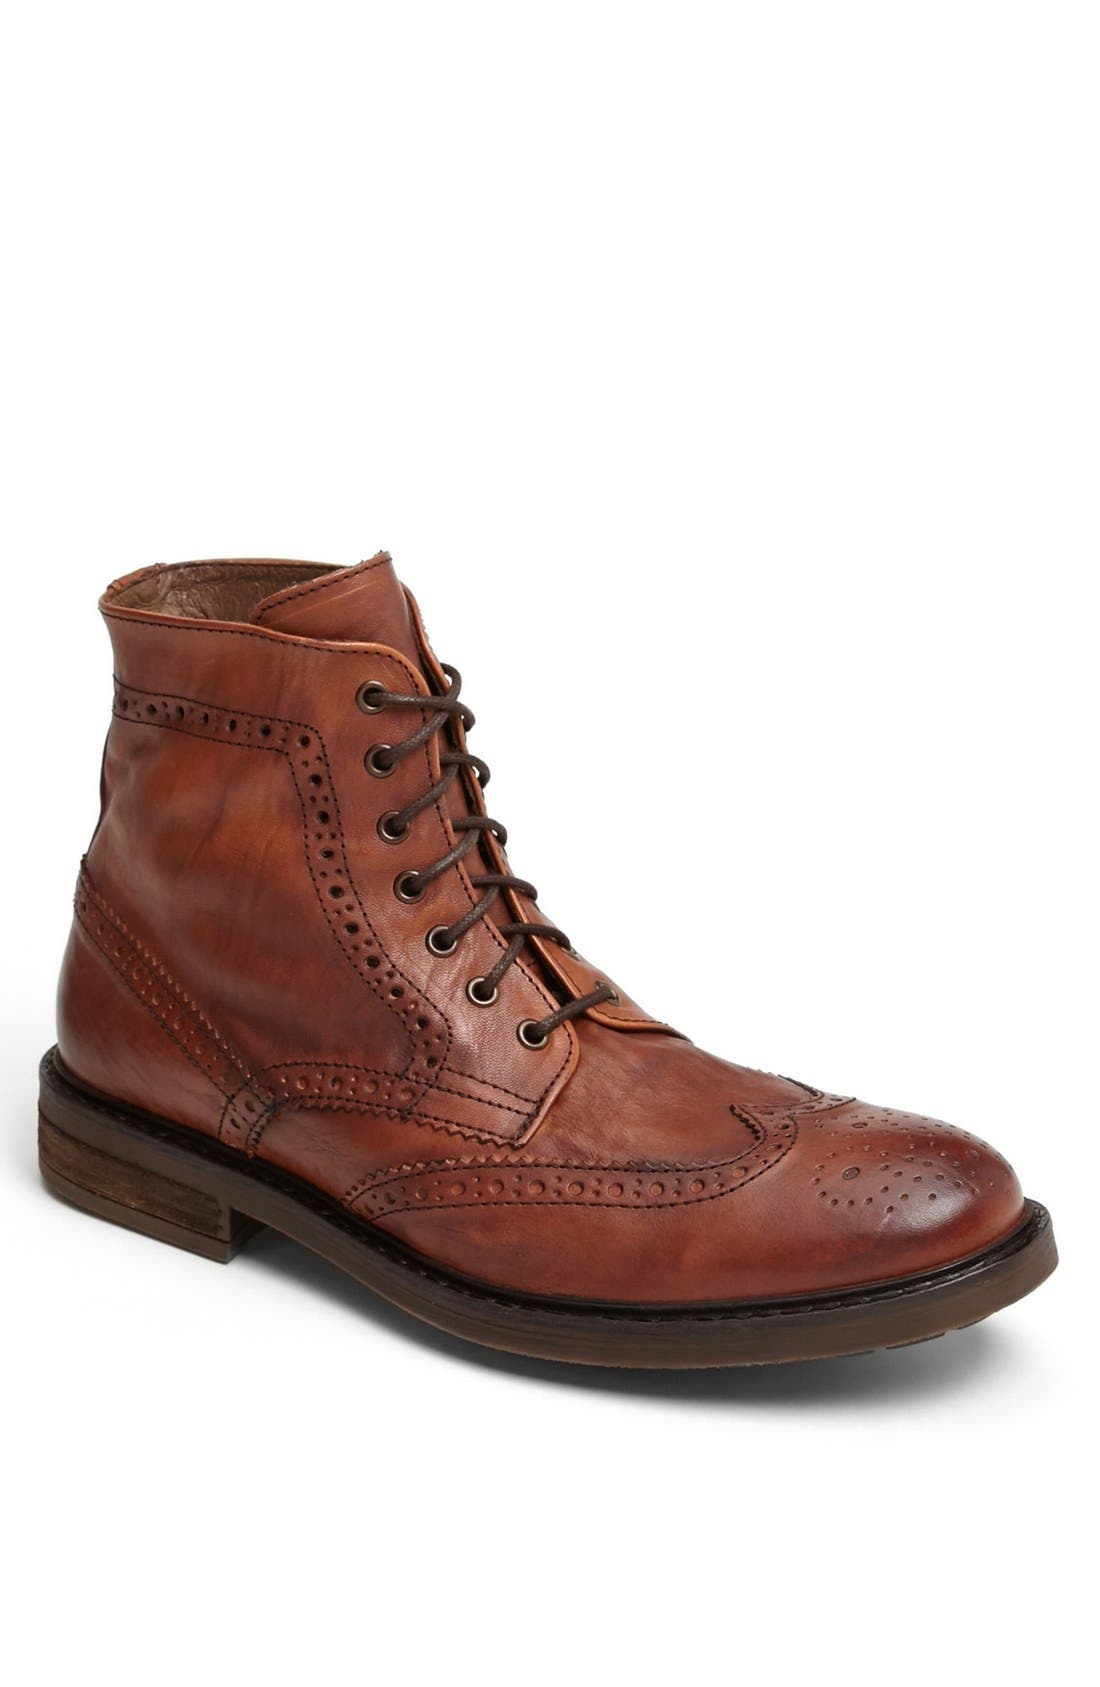 Alternate Image 1 Selected - Rogue 'William' Wingtip Boot